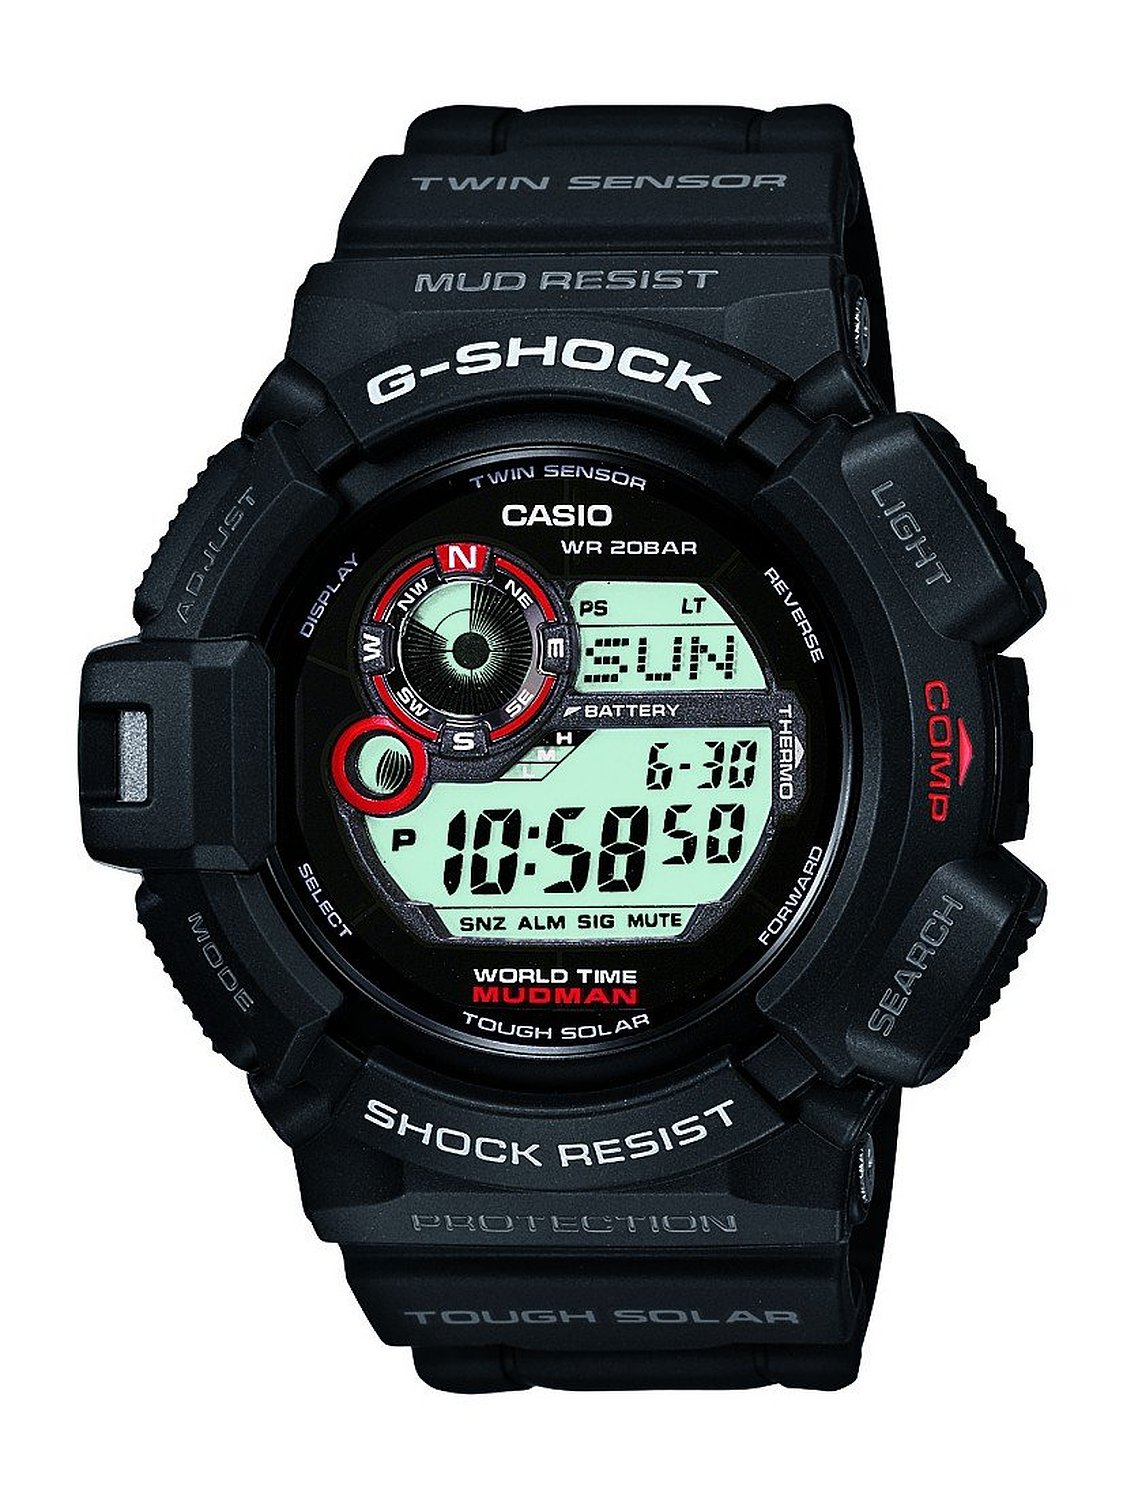 Casio G Shock G9300 Digital Watch Image